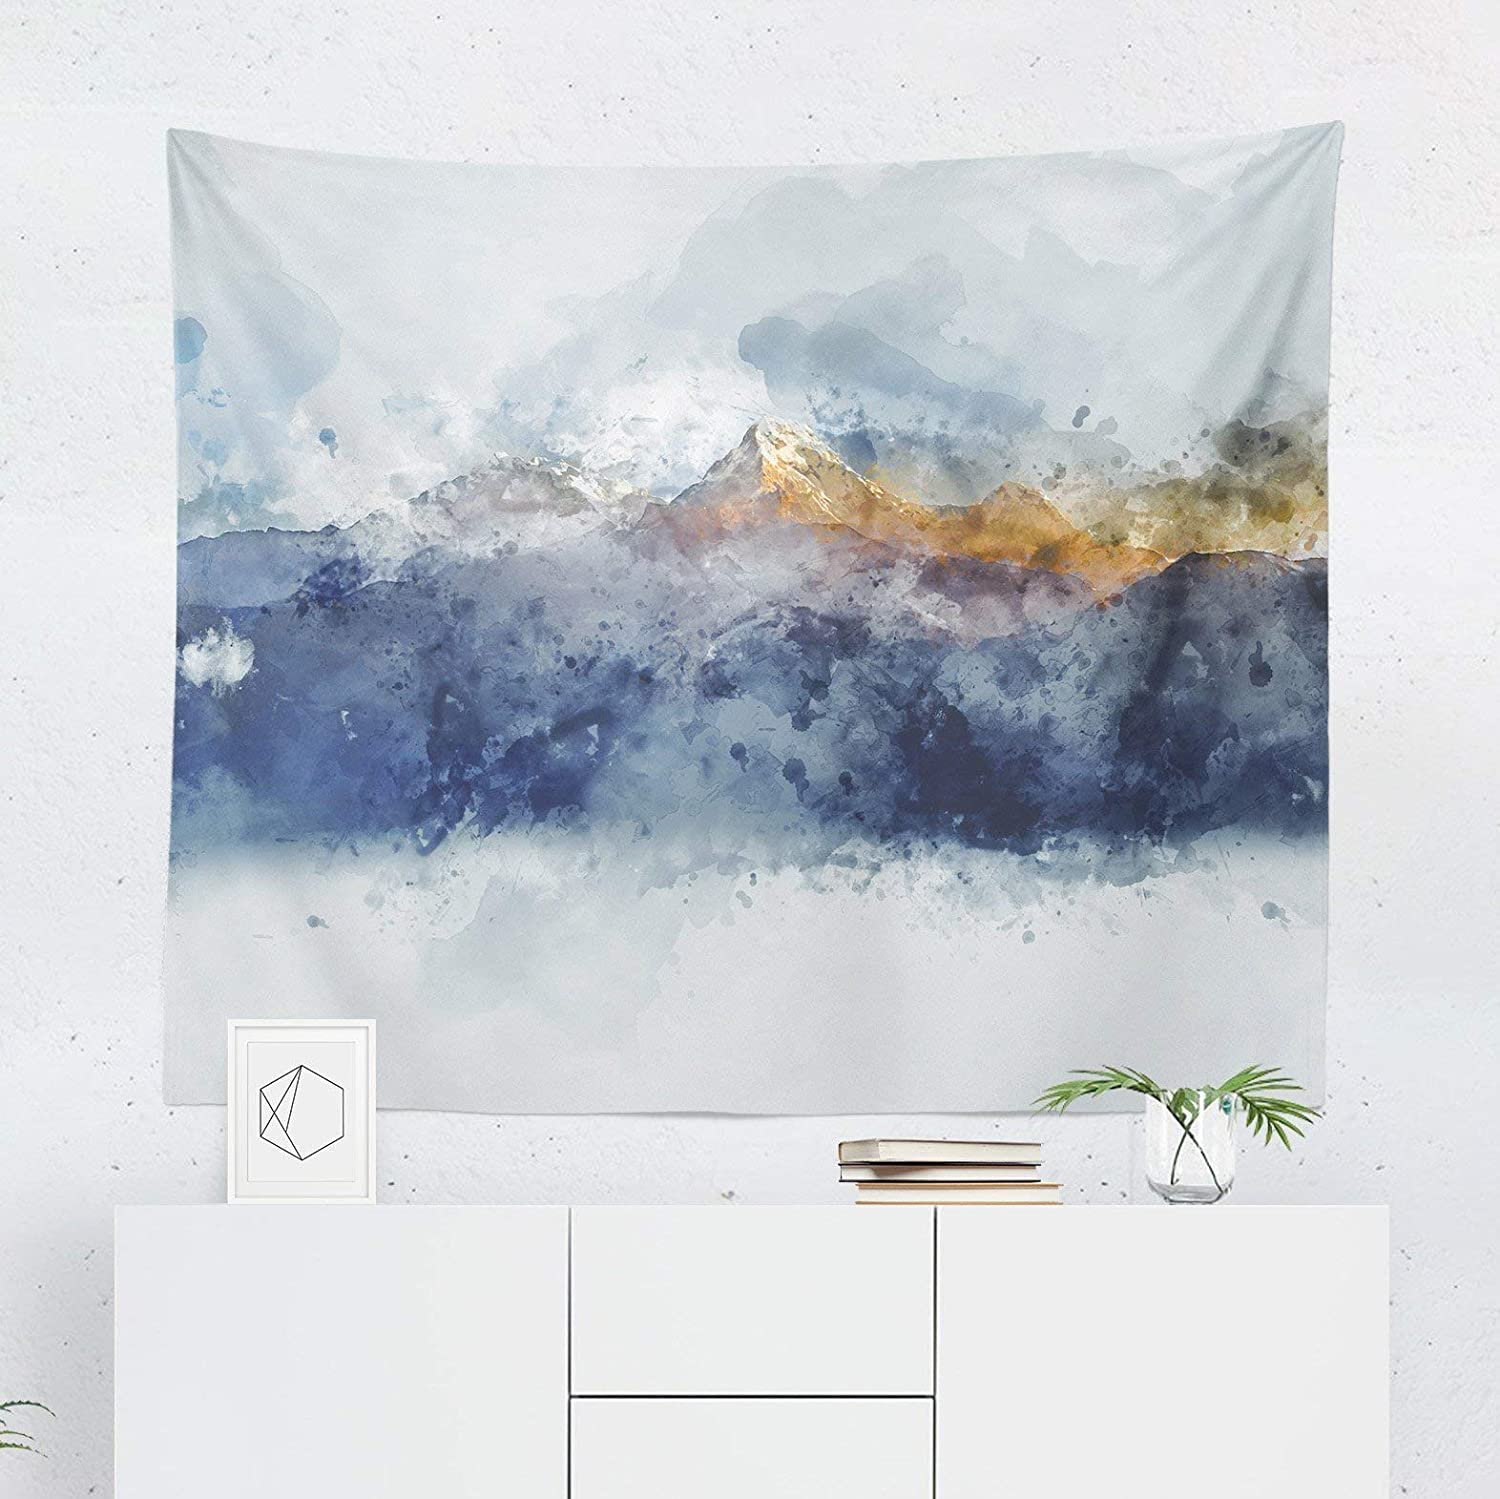 Watercolor Mountain Tapestry Wall Hanging Landscape Scenic Nature Wall Tapestries Dorm Room Bedroom Decor Art Printed In The Usa Small To Giant Sizes Handmade Dprd Tasikmalayakab Go Id